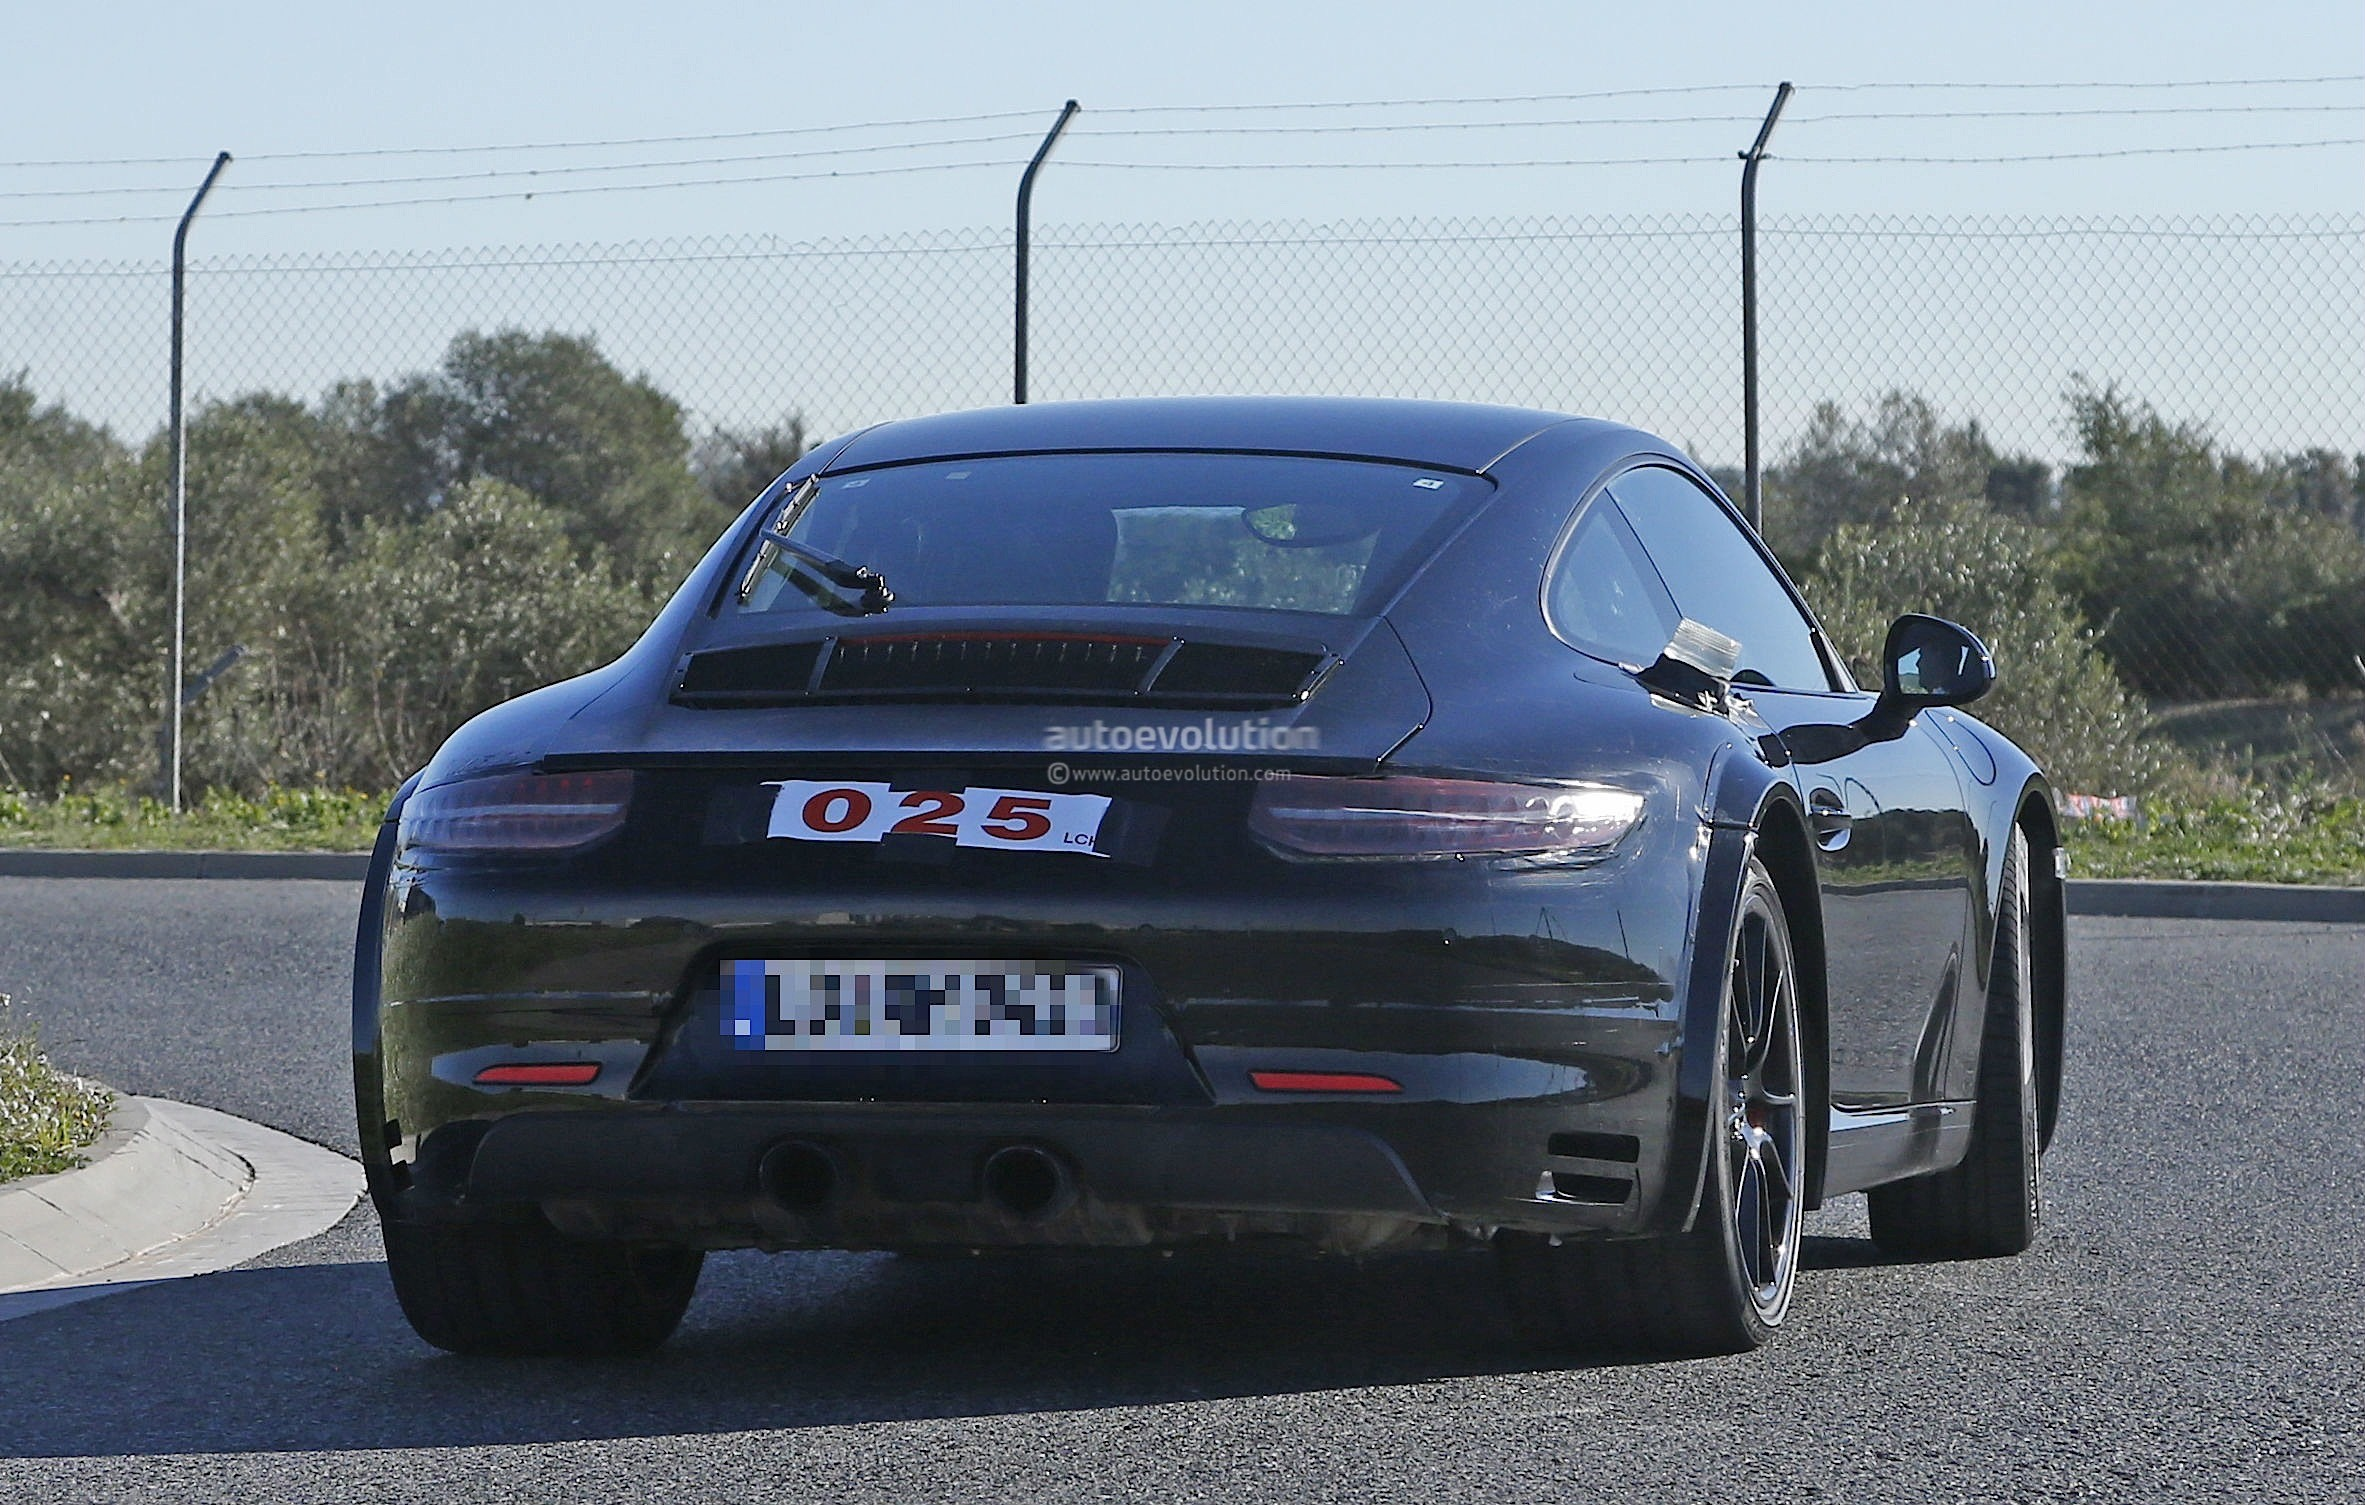 2019 Porsche 911 Turbo photo - 4